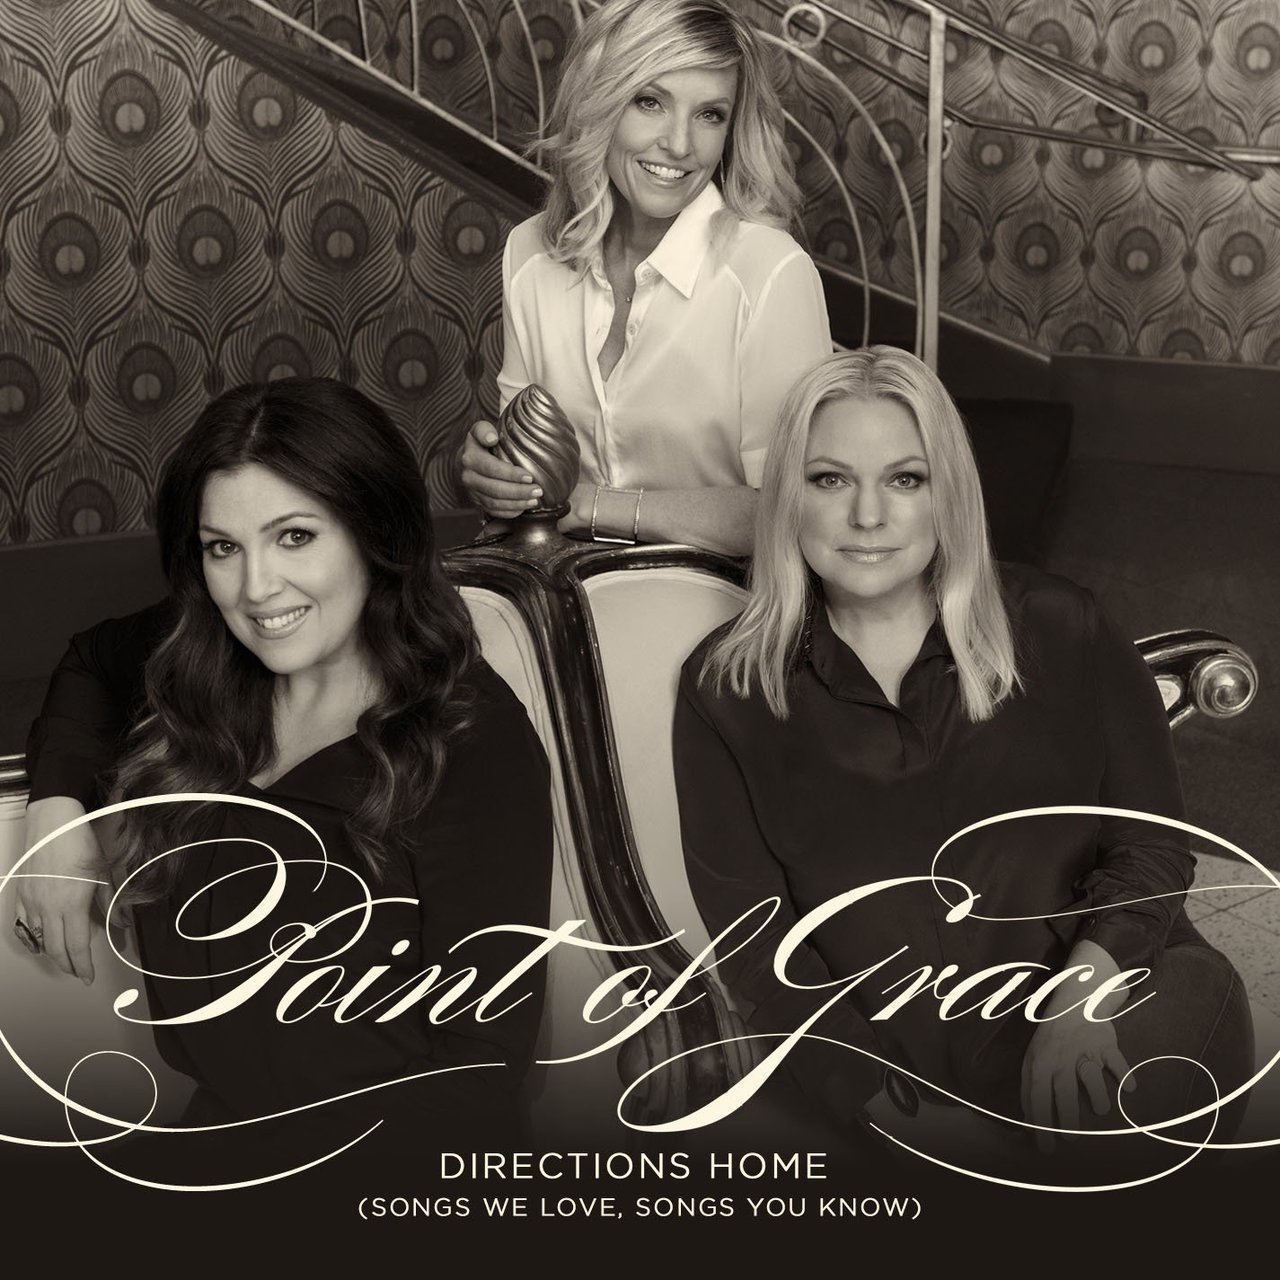 Directions home   songs we love   songs you know   by point of grace